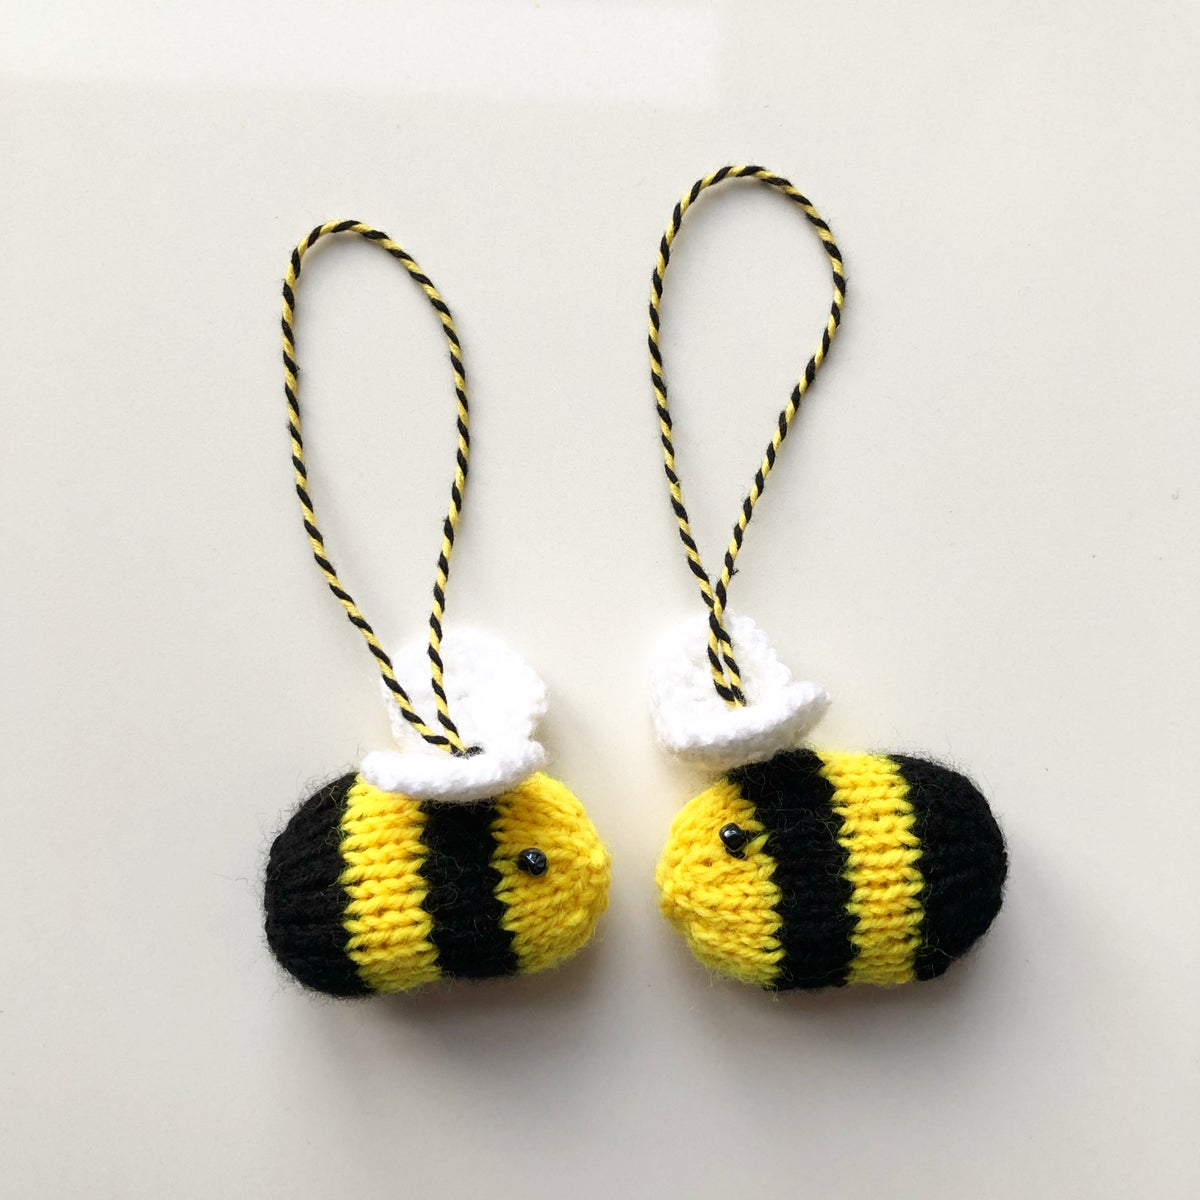 Image of KNITTED BEE HANDMADE DECORATION